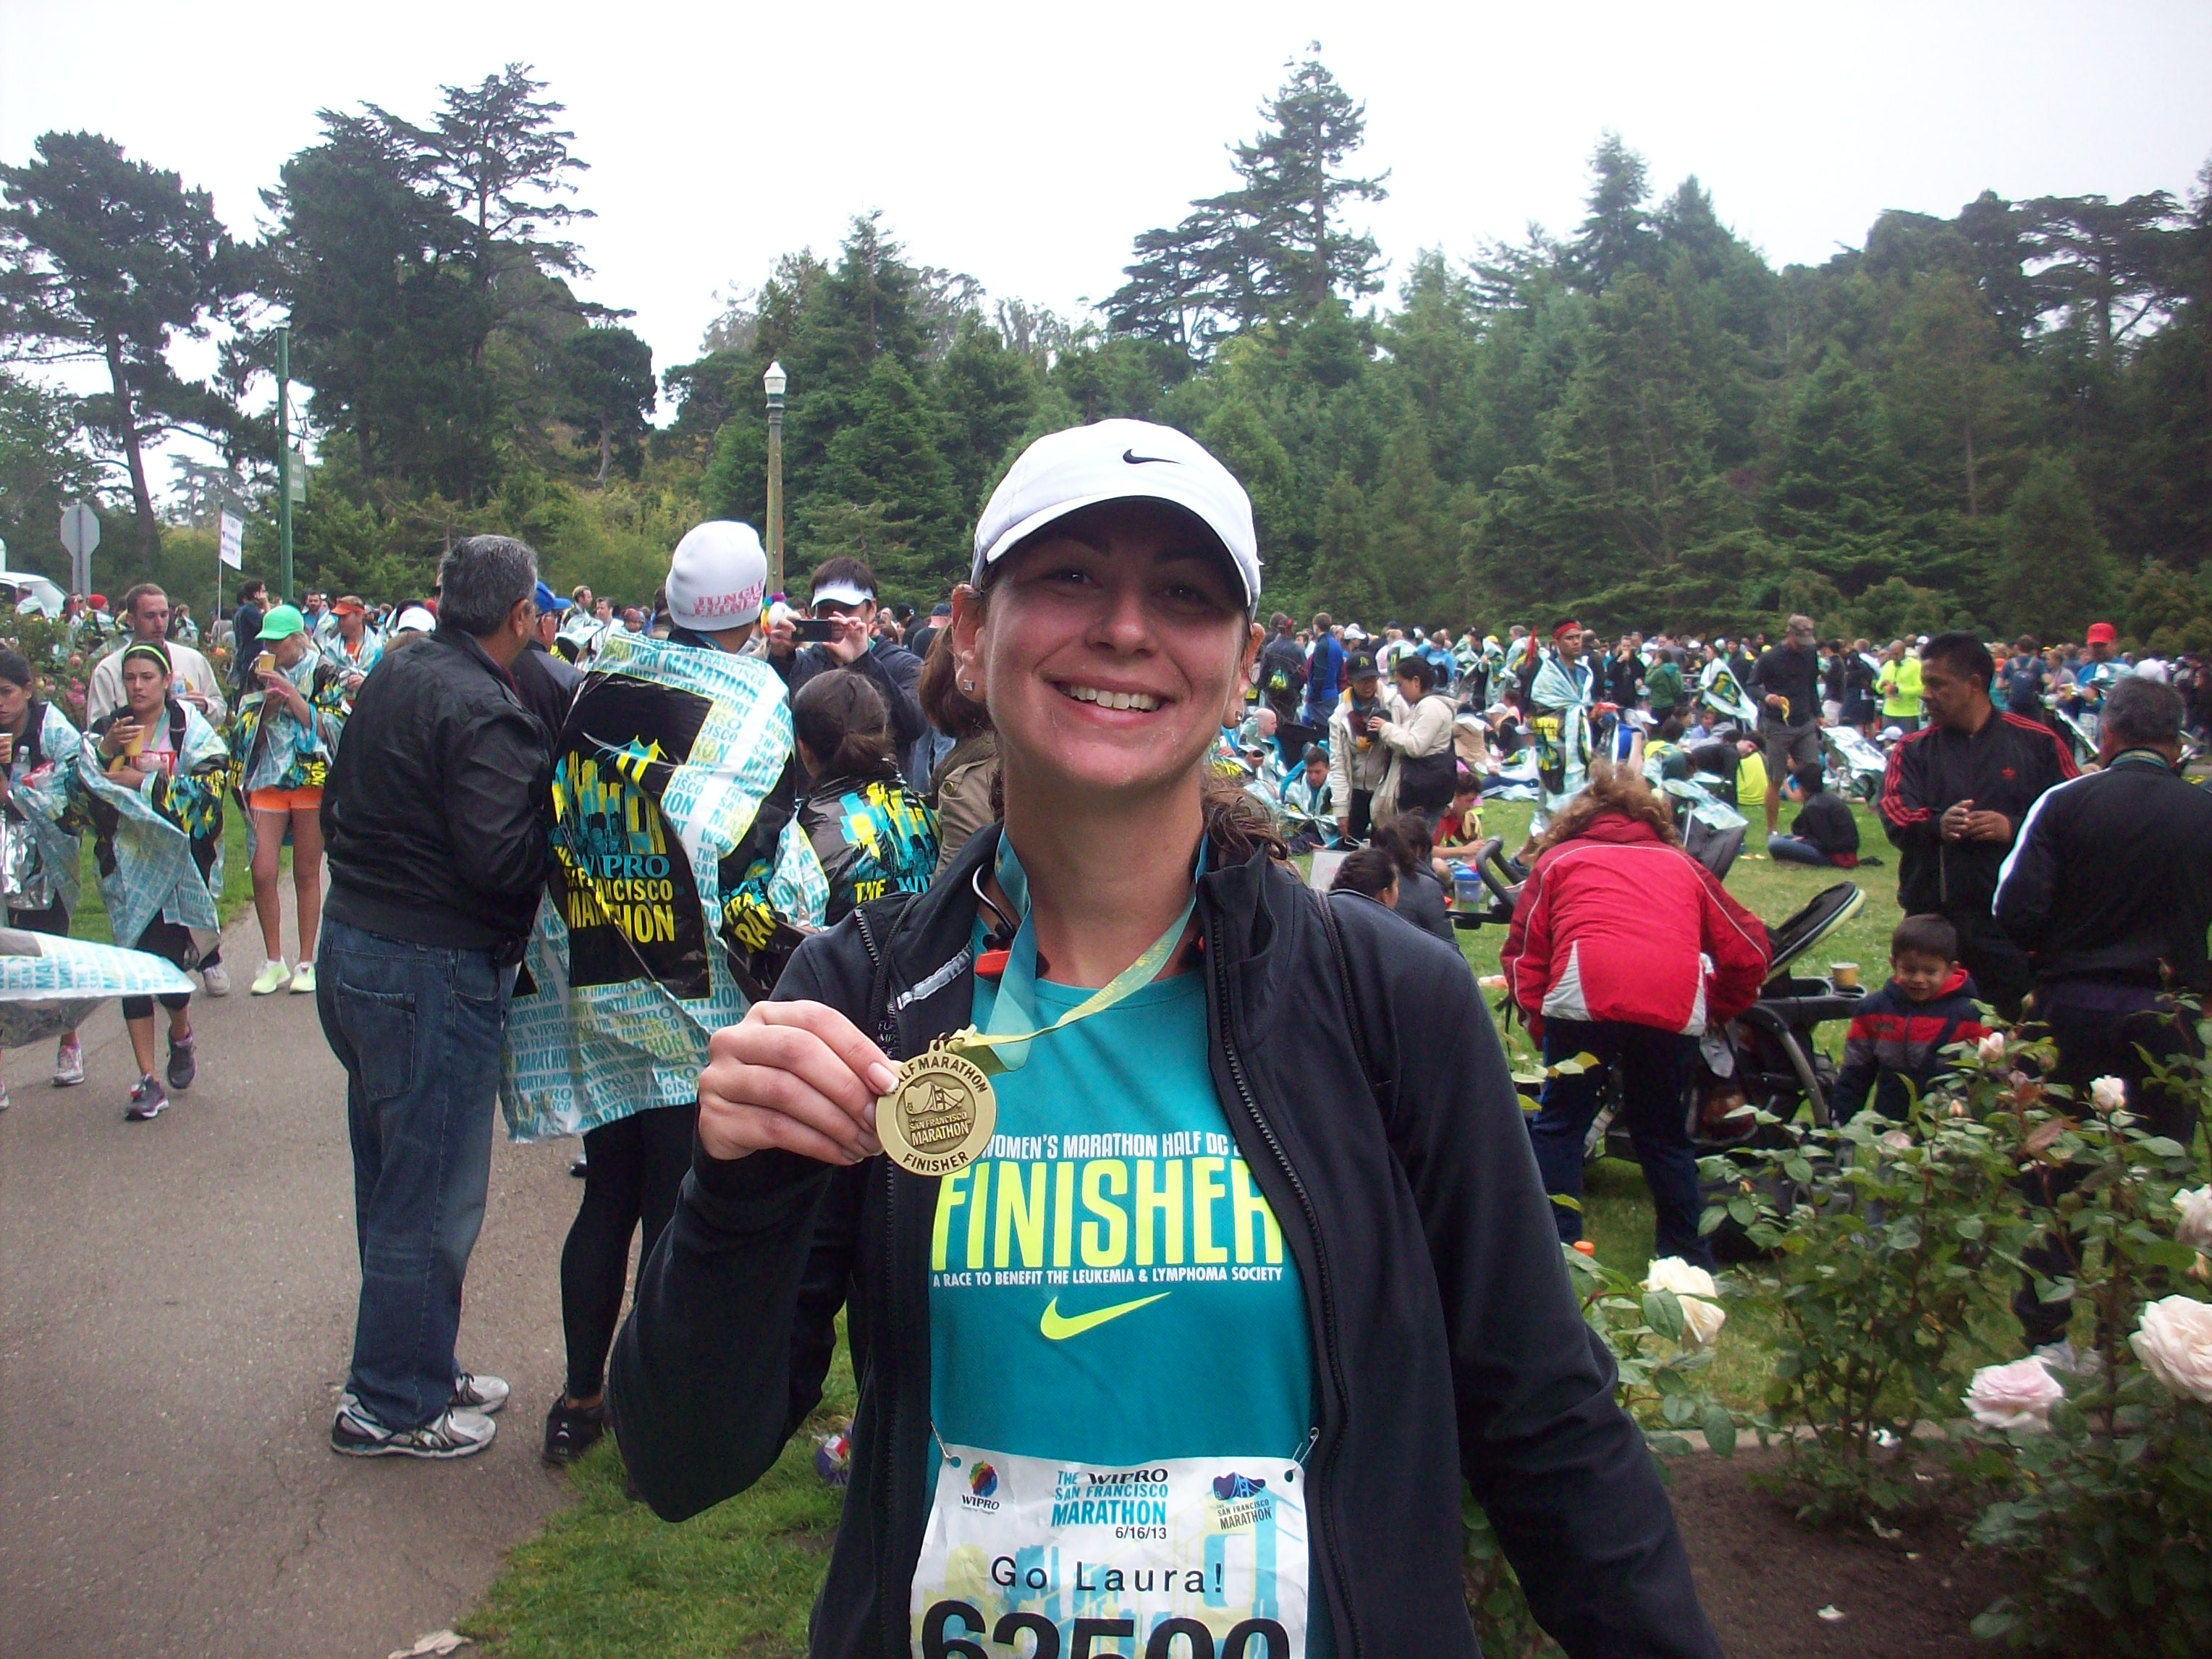 Proud finisher- 13.1 #14 done and done!